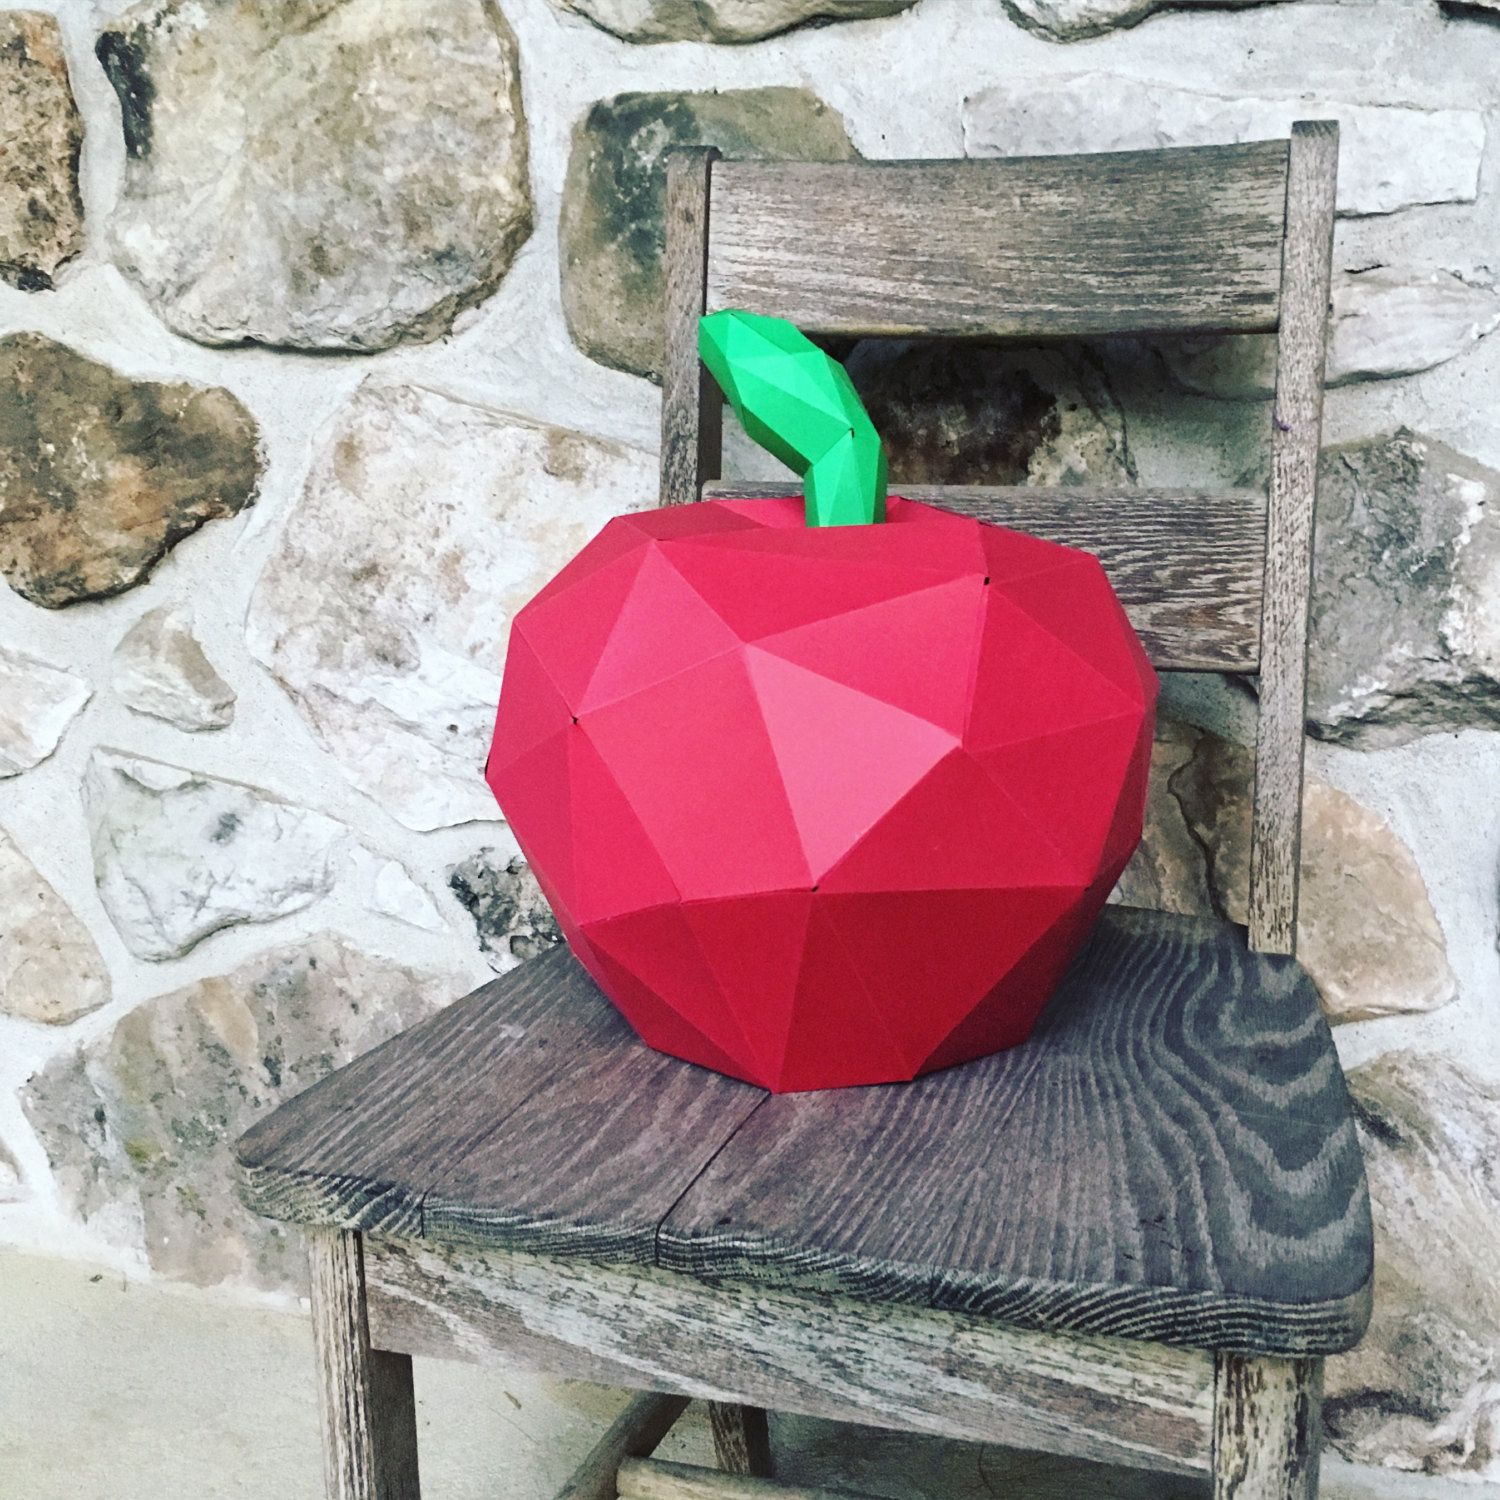 APPLE 3d papercraft. You get a PDF digital template and instructions for this DIY (do